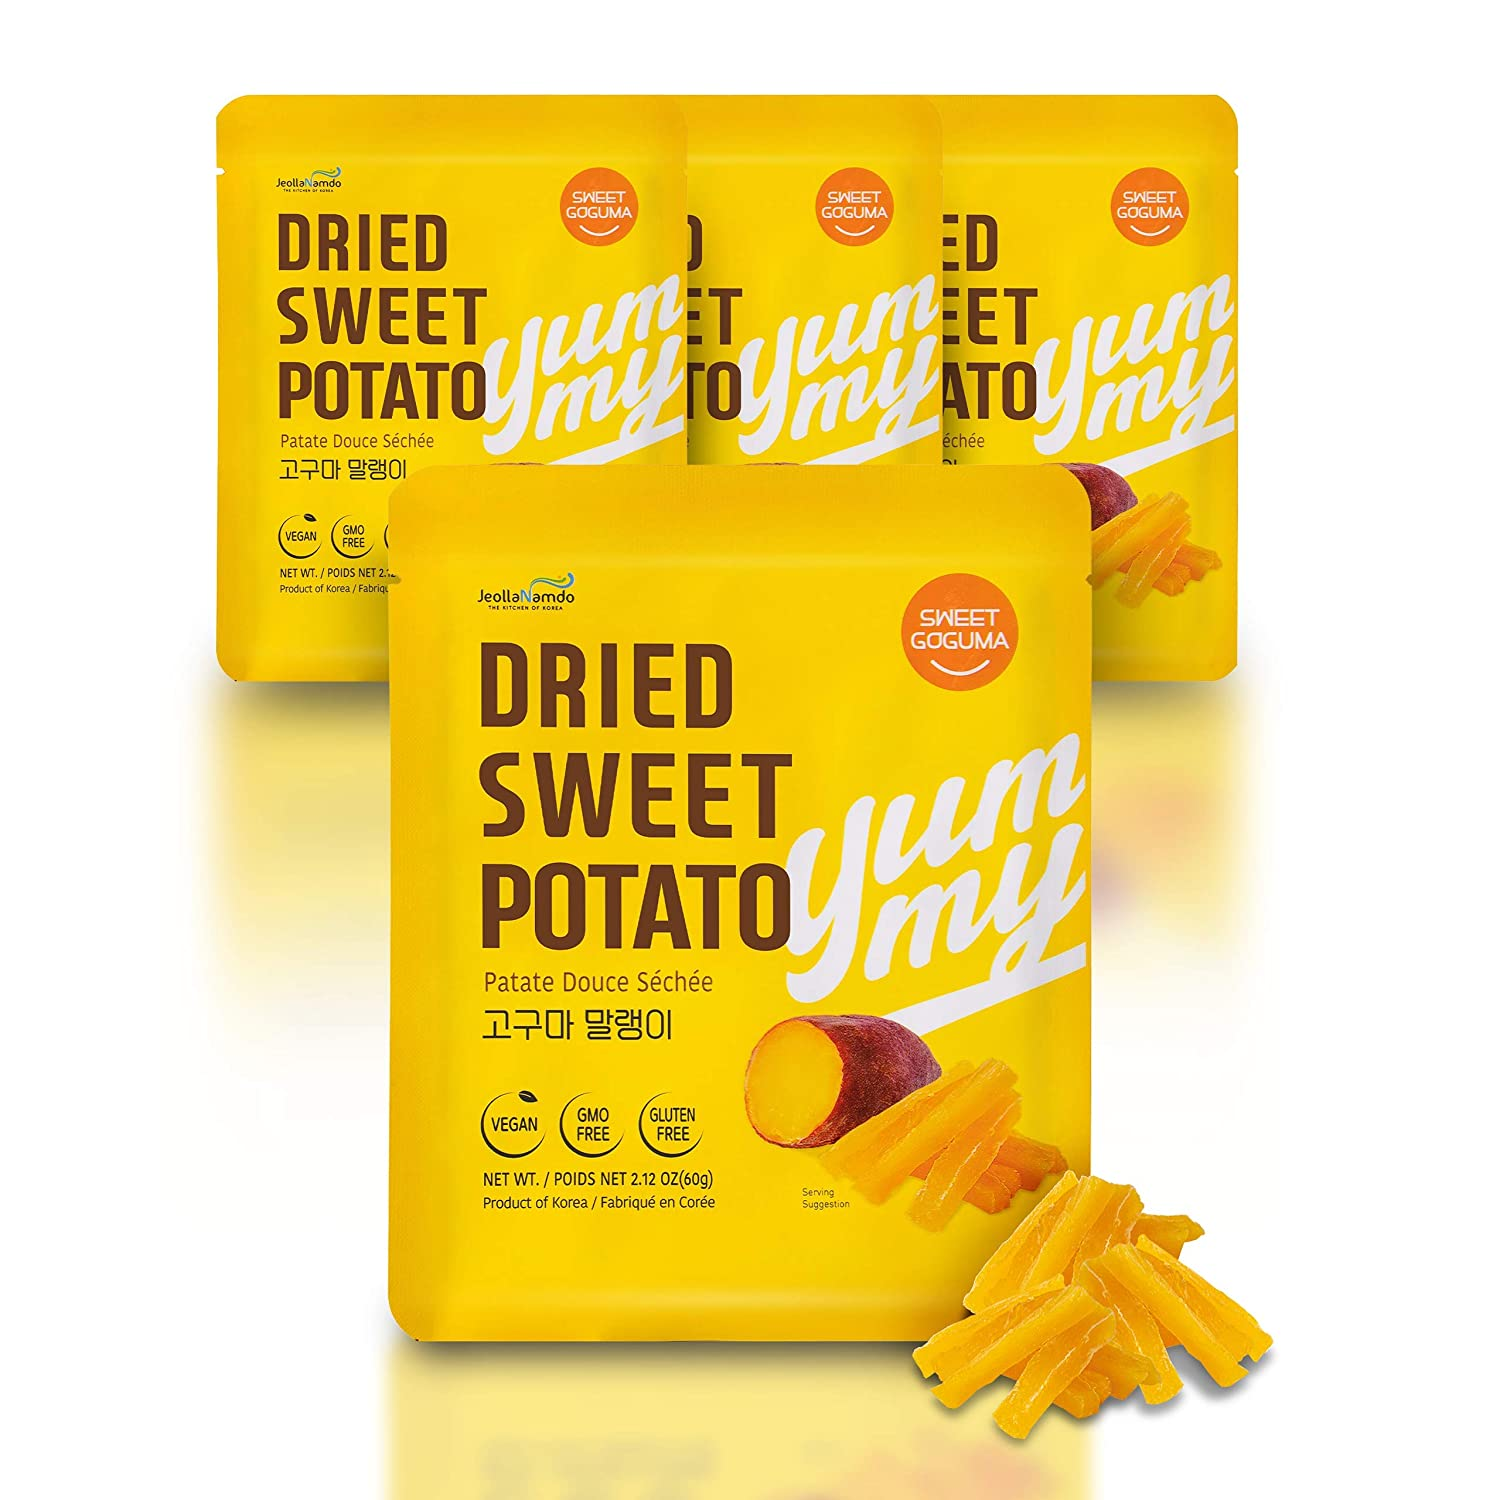 100% Natural Sweet Potato Snacks from South Korea [ 4 PACK ] Healthy Vegan GMO Free Gluten Free Snack for Diets with No Preservatives No Sugar Added l Soft + Chewy 해남 고구마 말랭이 by [Sweet Goguma]